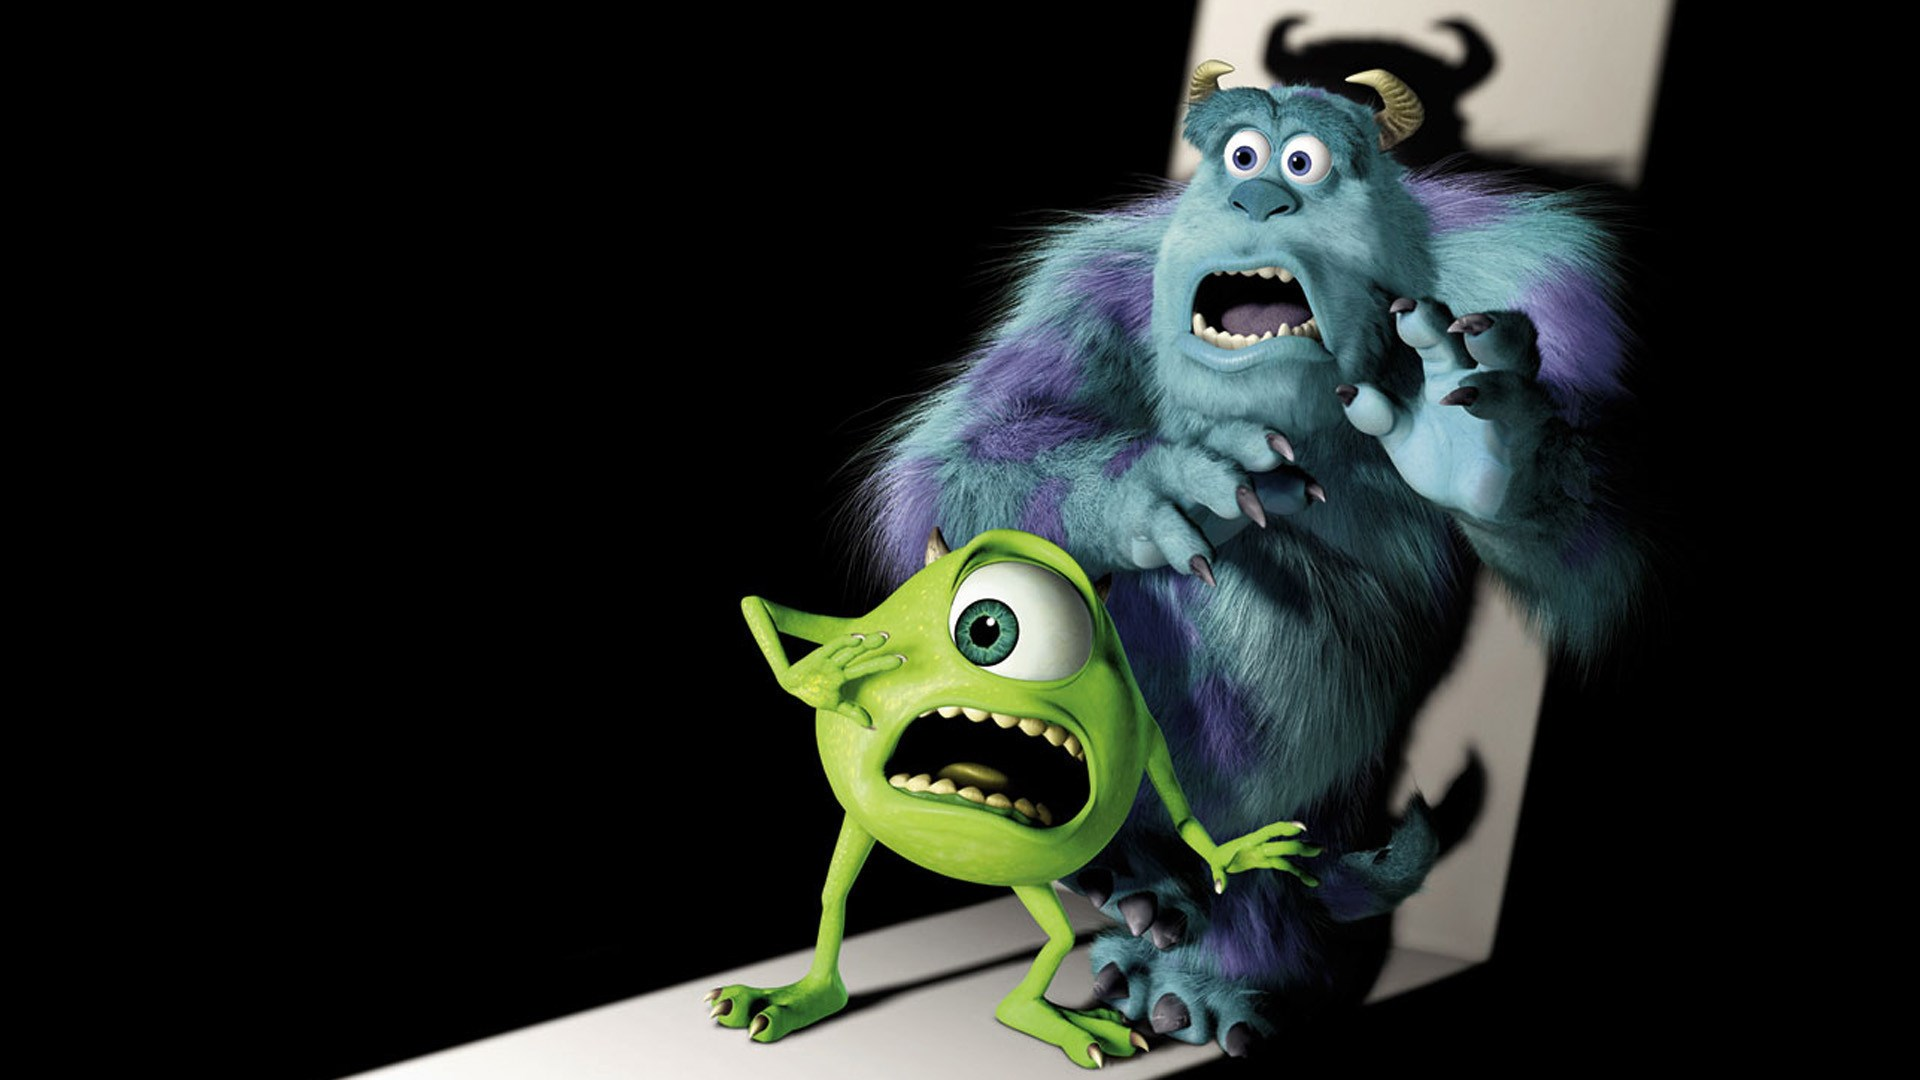 1920x1080-Free-download-monsters-inc-wallpaper-wpc580732